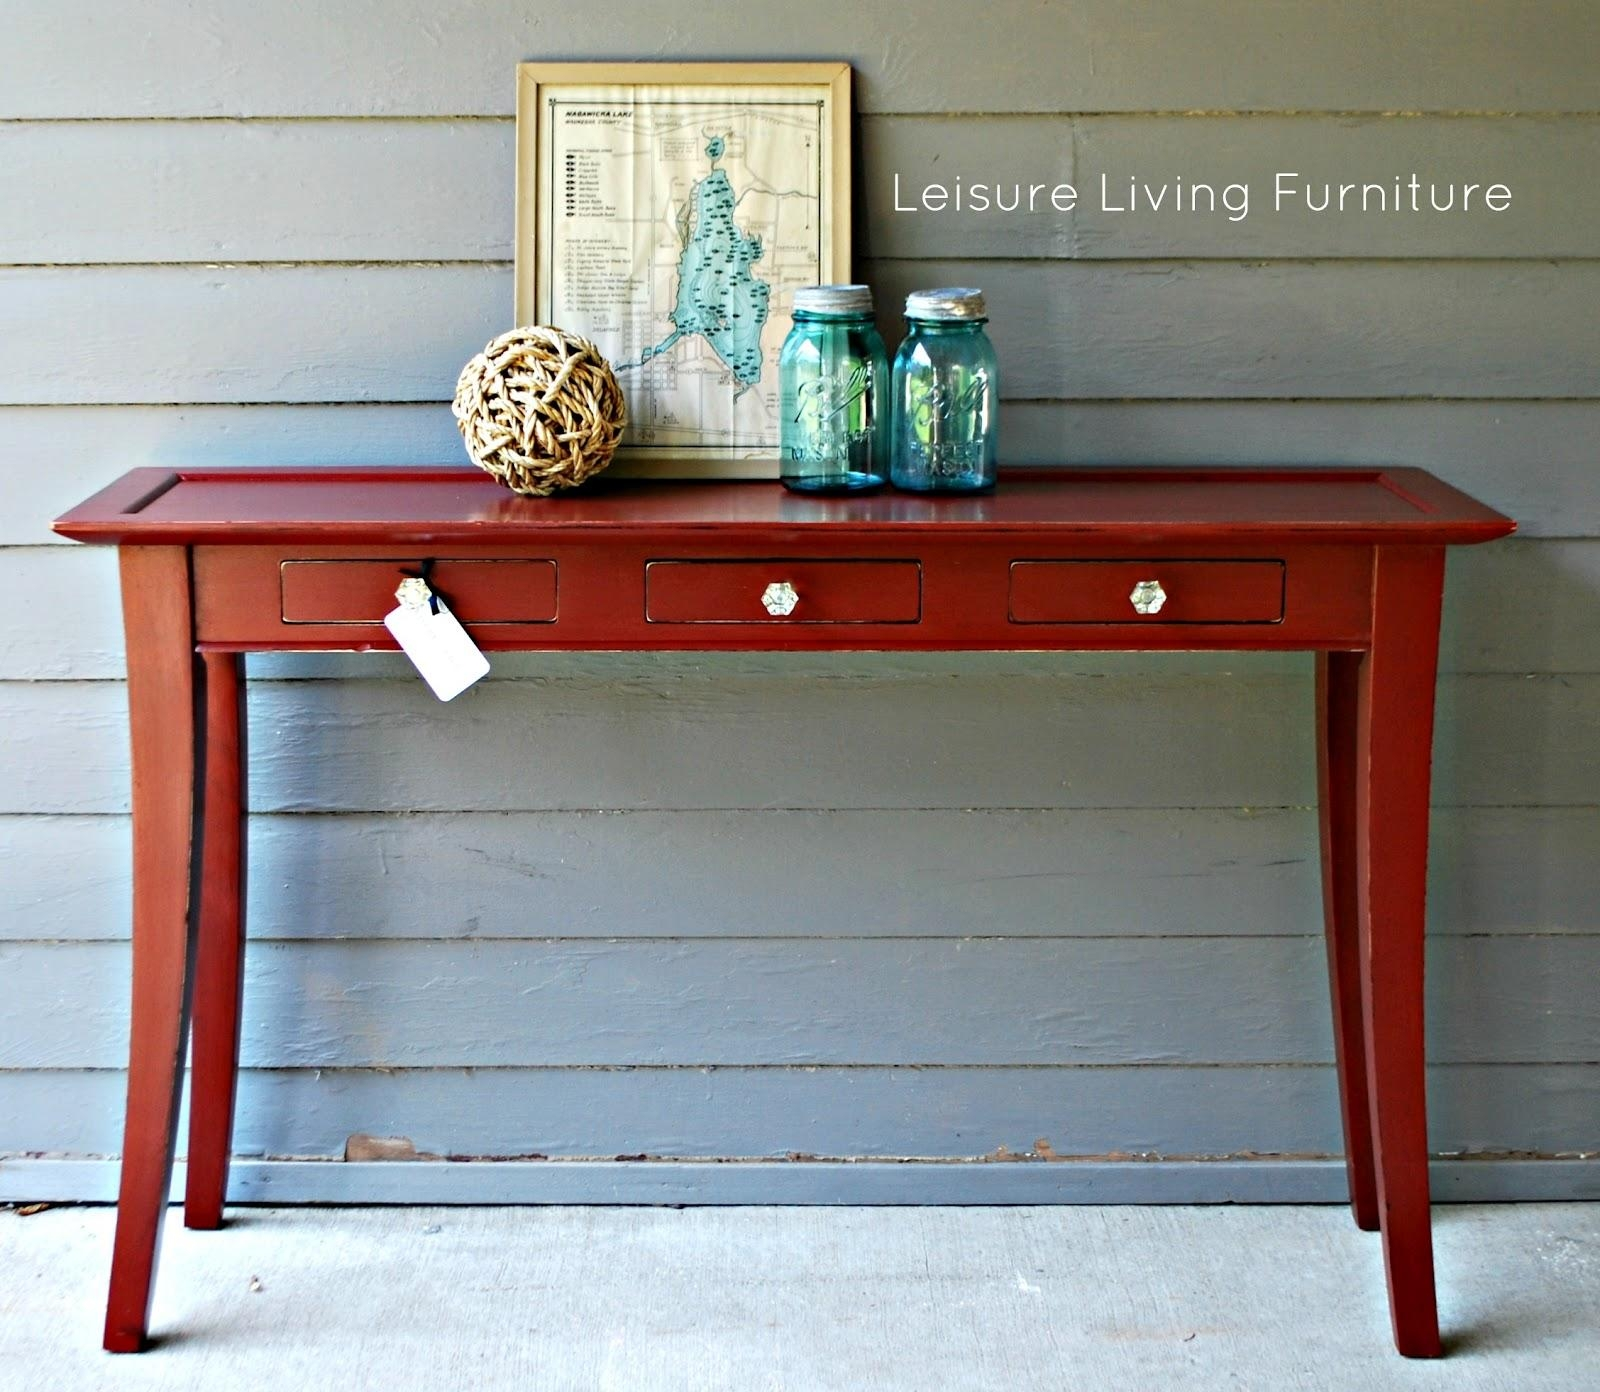 Leisure Living: Primer Red Sofa Table Intended For Red Sofa Tables (Image 7 of 20)